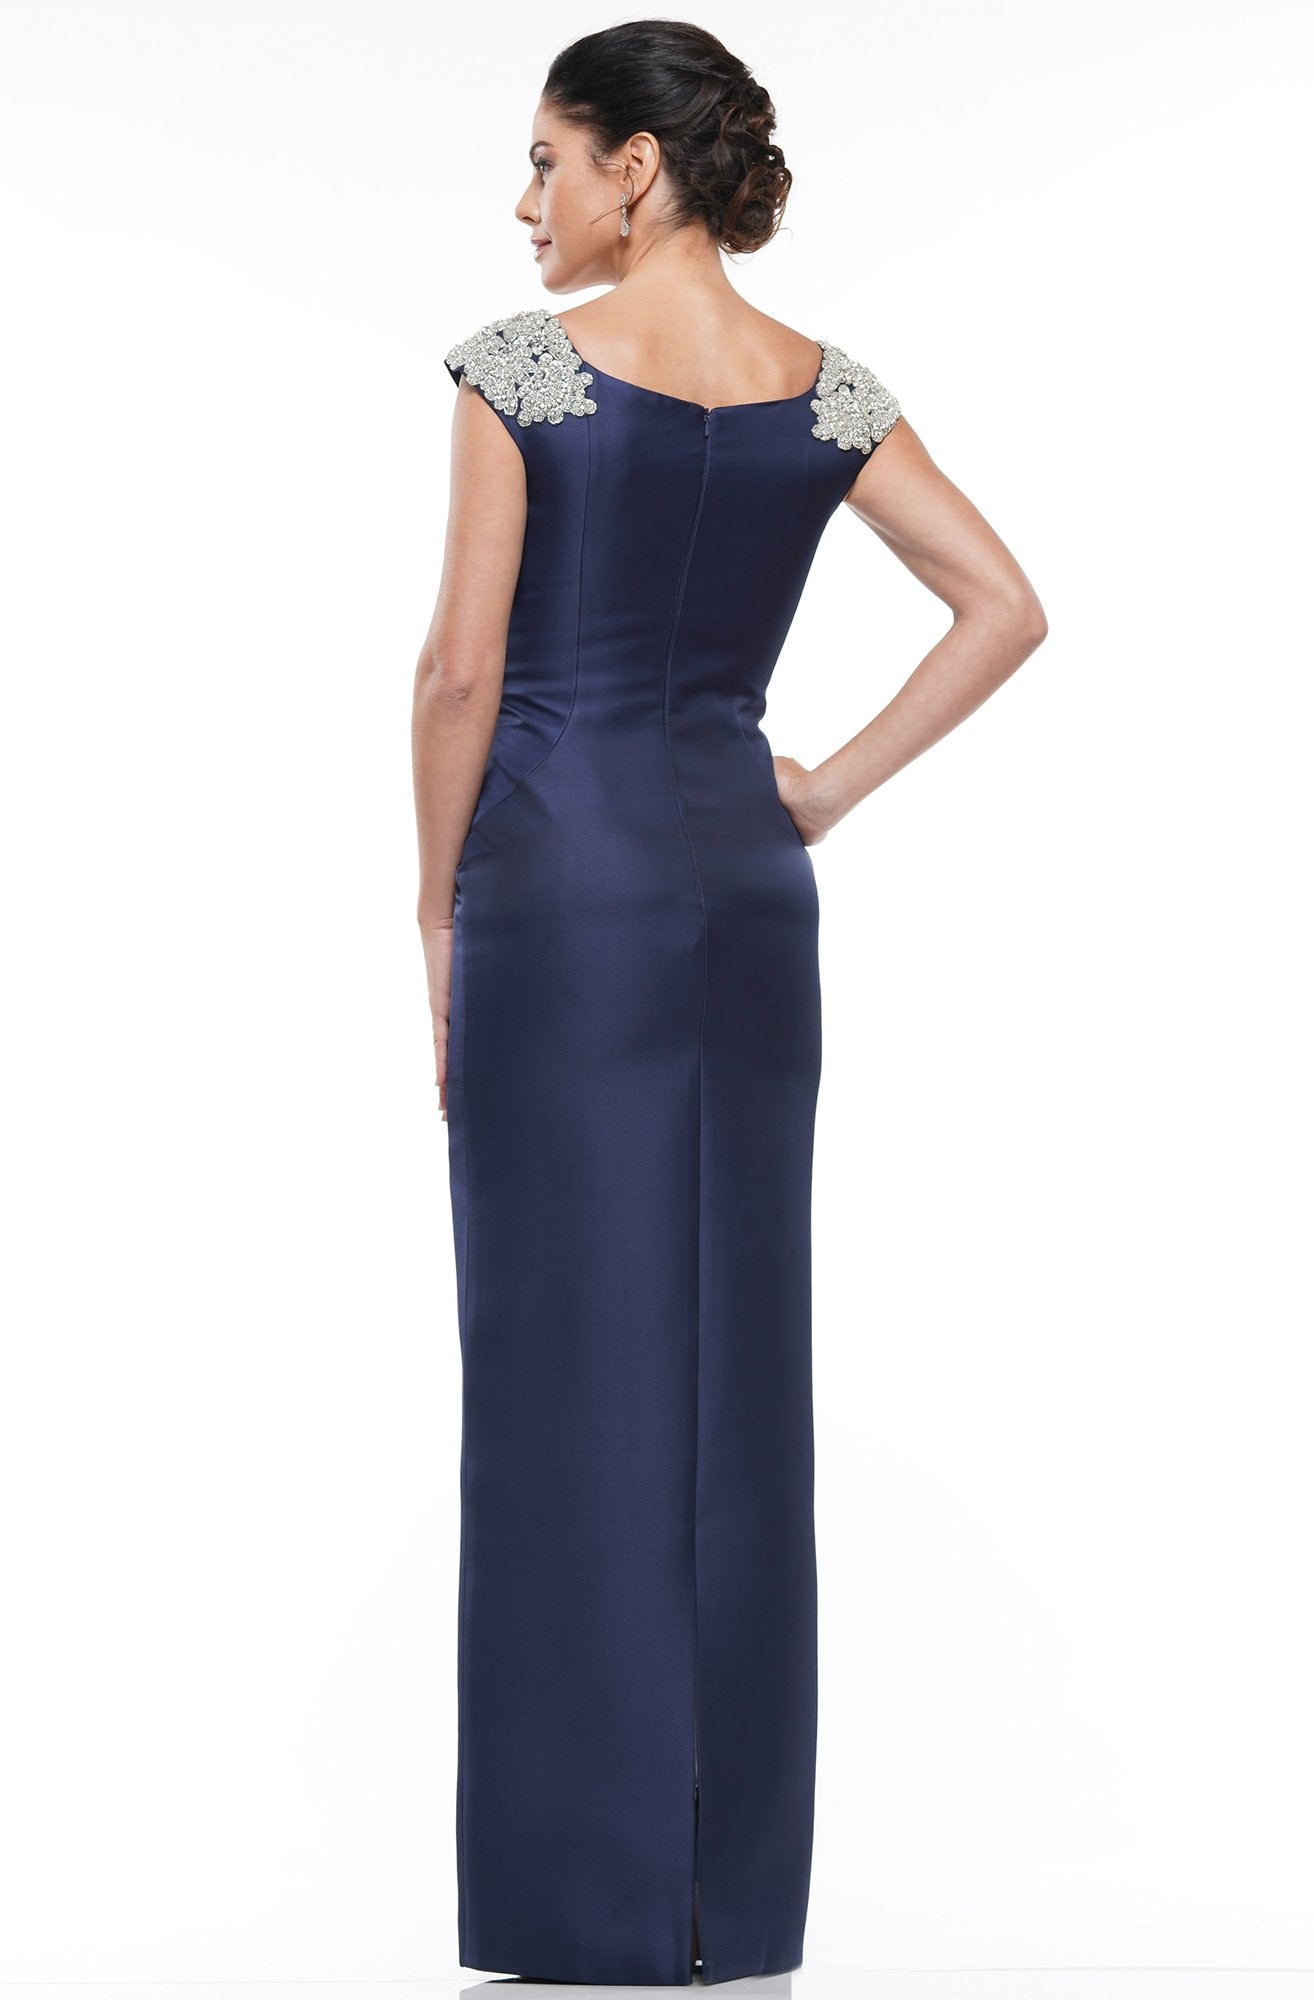 Marsoni By Colors - MV1004 Jewel Embellished Shoulders Satin Column Gown In Blue